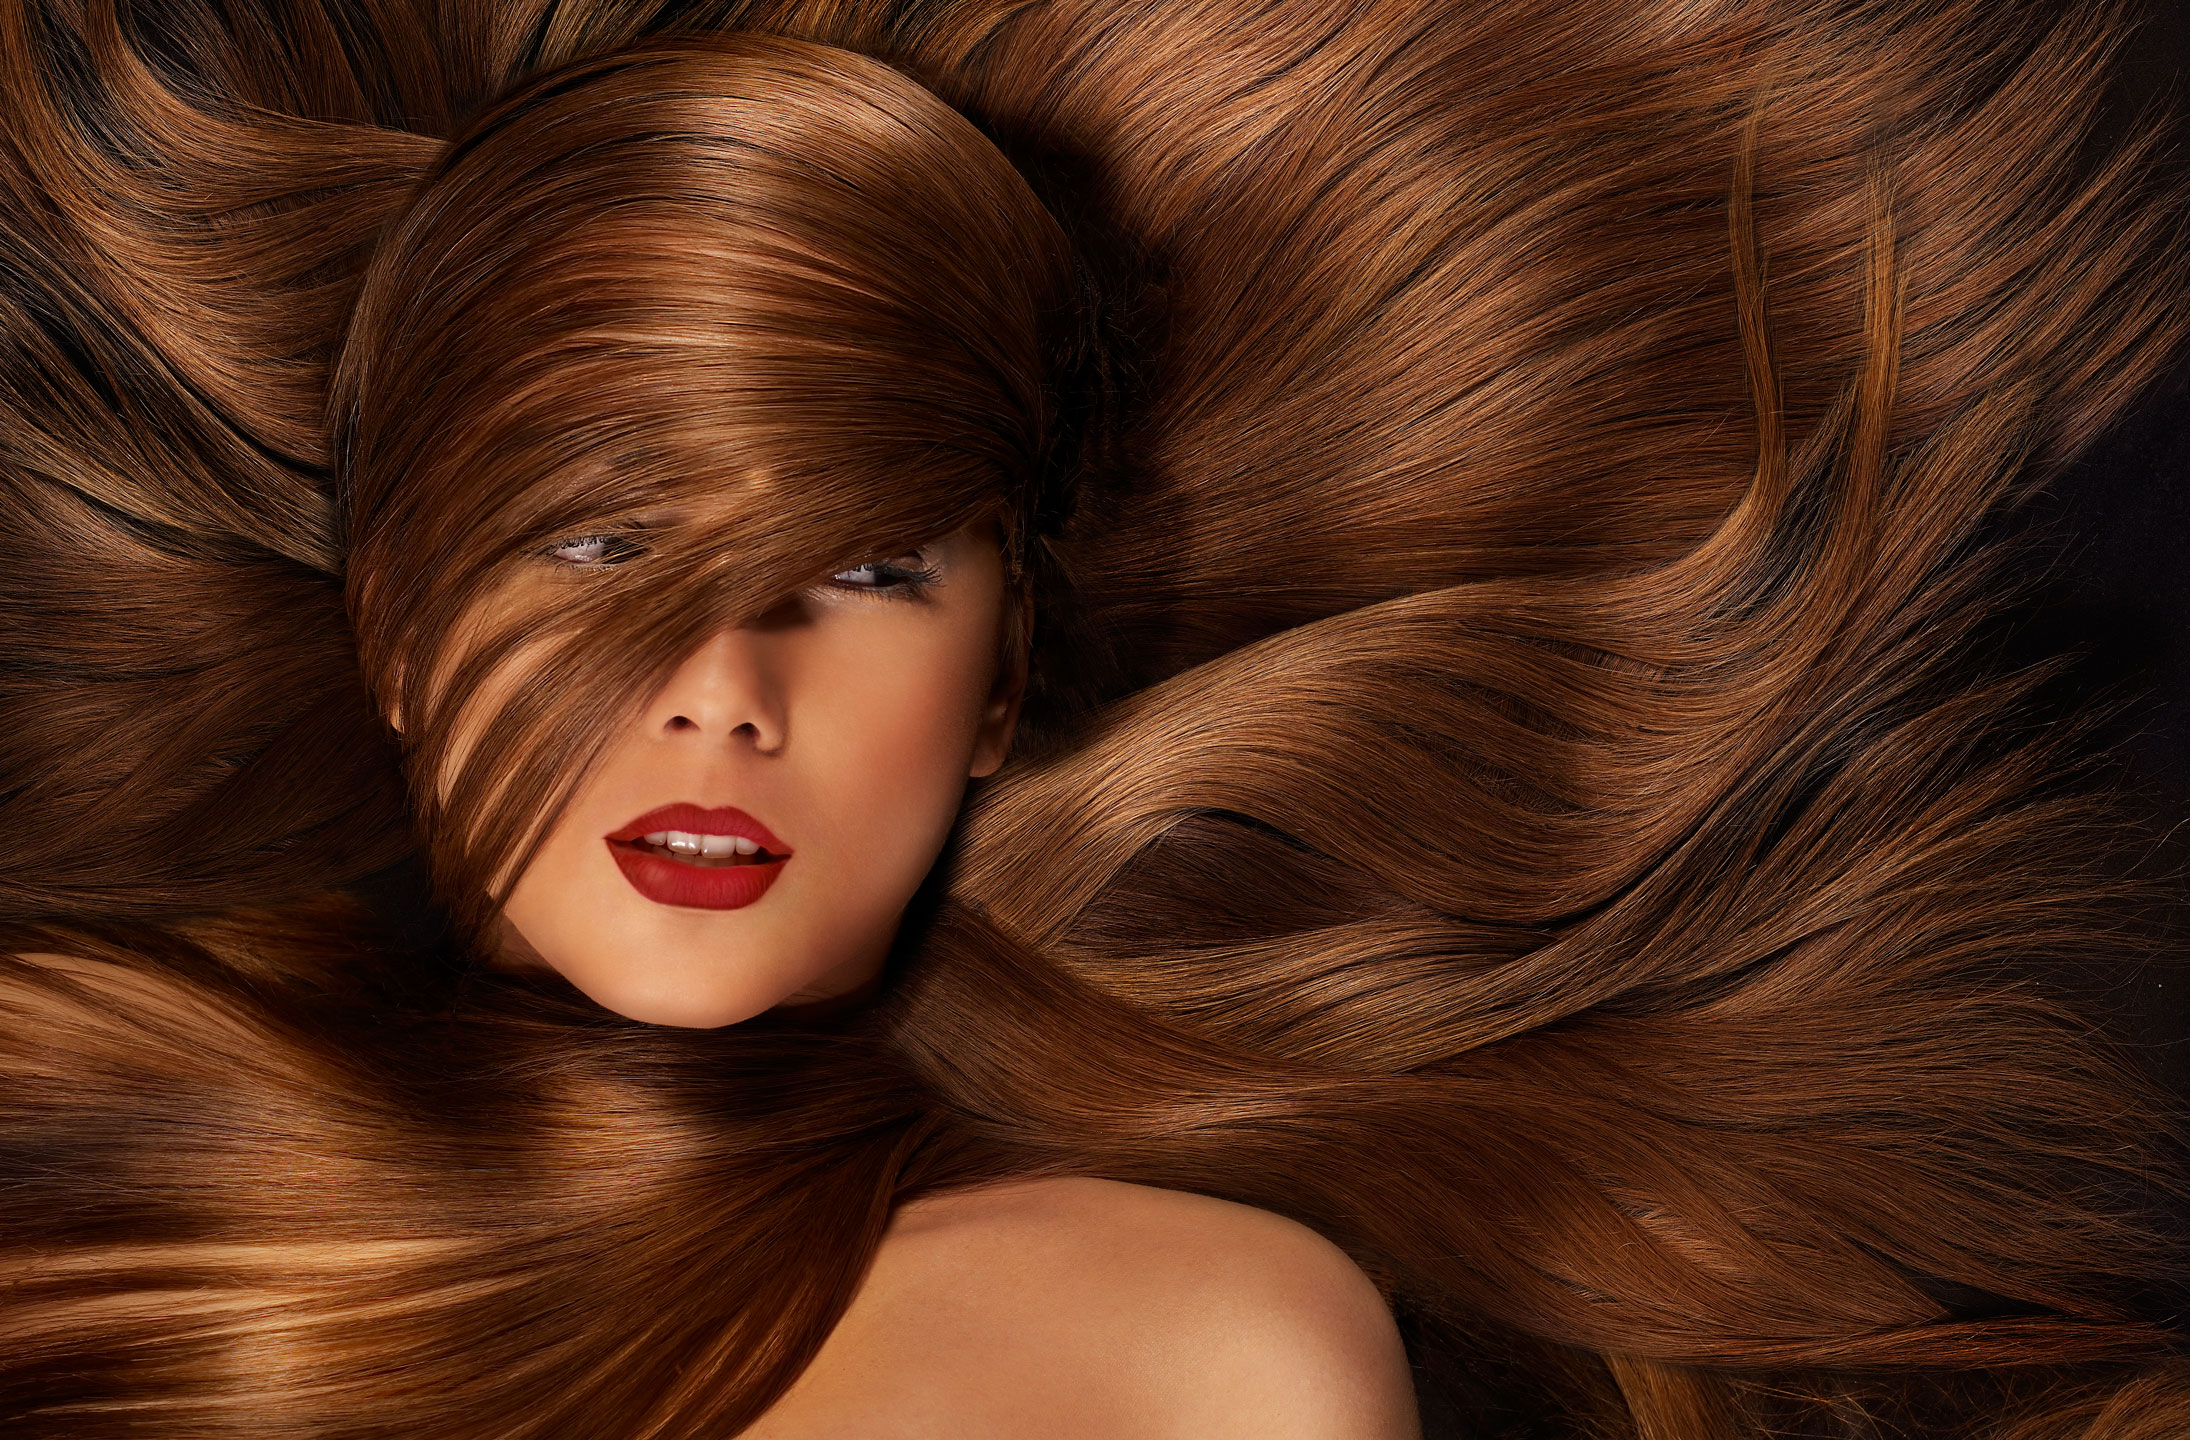 Hair-Swirls-047857-2-[2012-retouch-edit]-v3.jpg